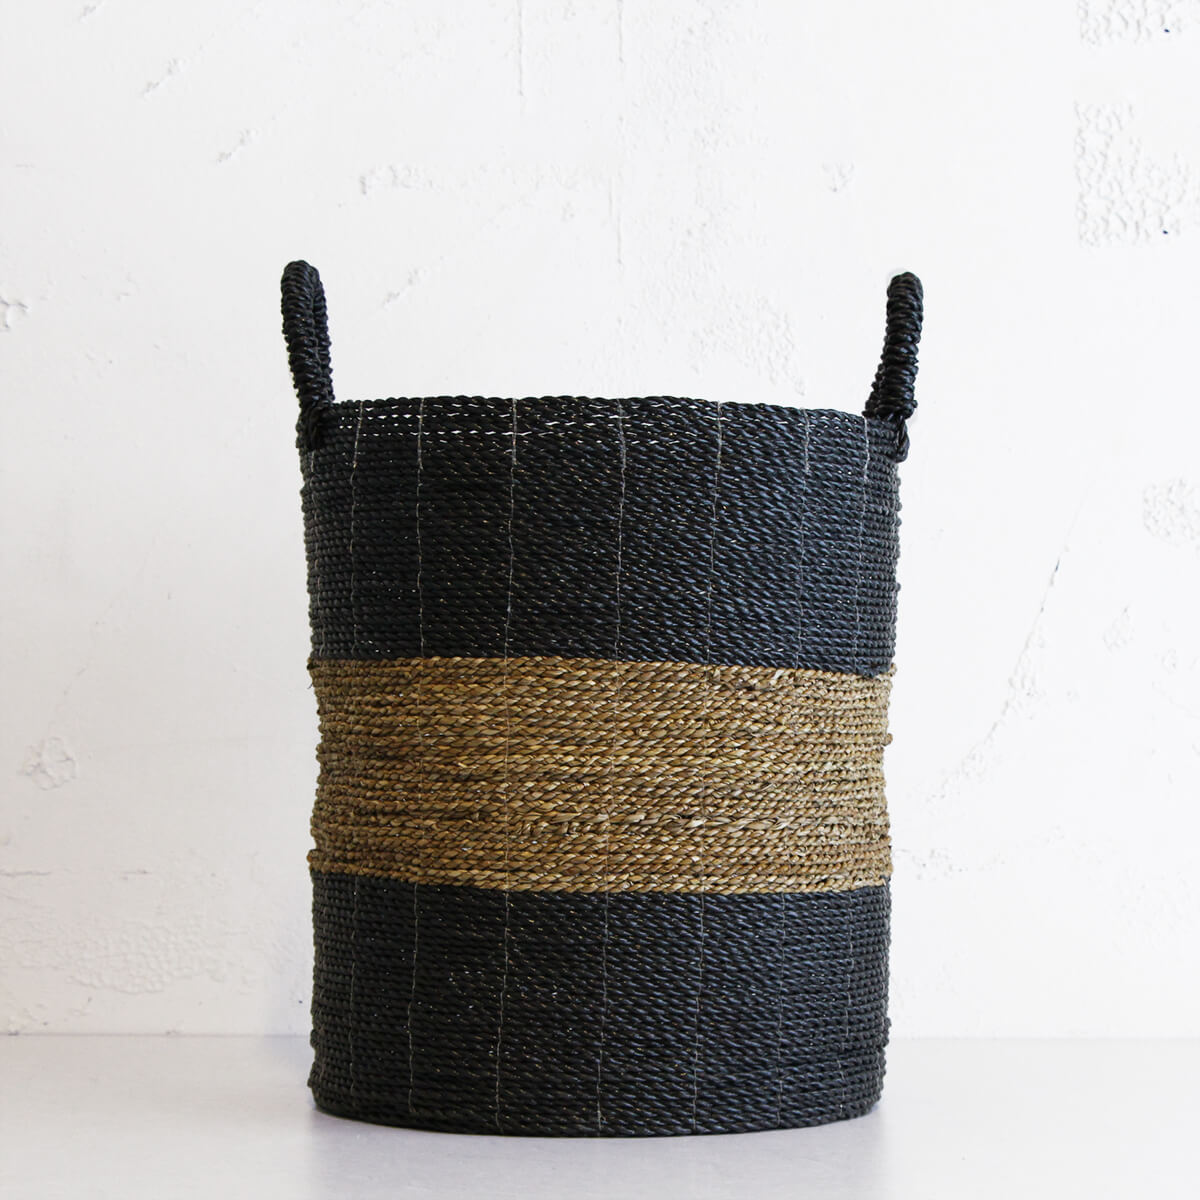 SEAGRASS STORAGE BASKET  |  BLACK + NATURAL STRIPE  |  TALL